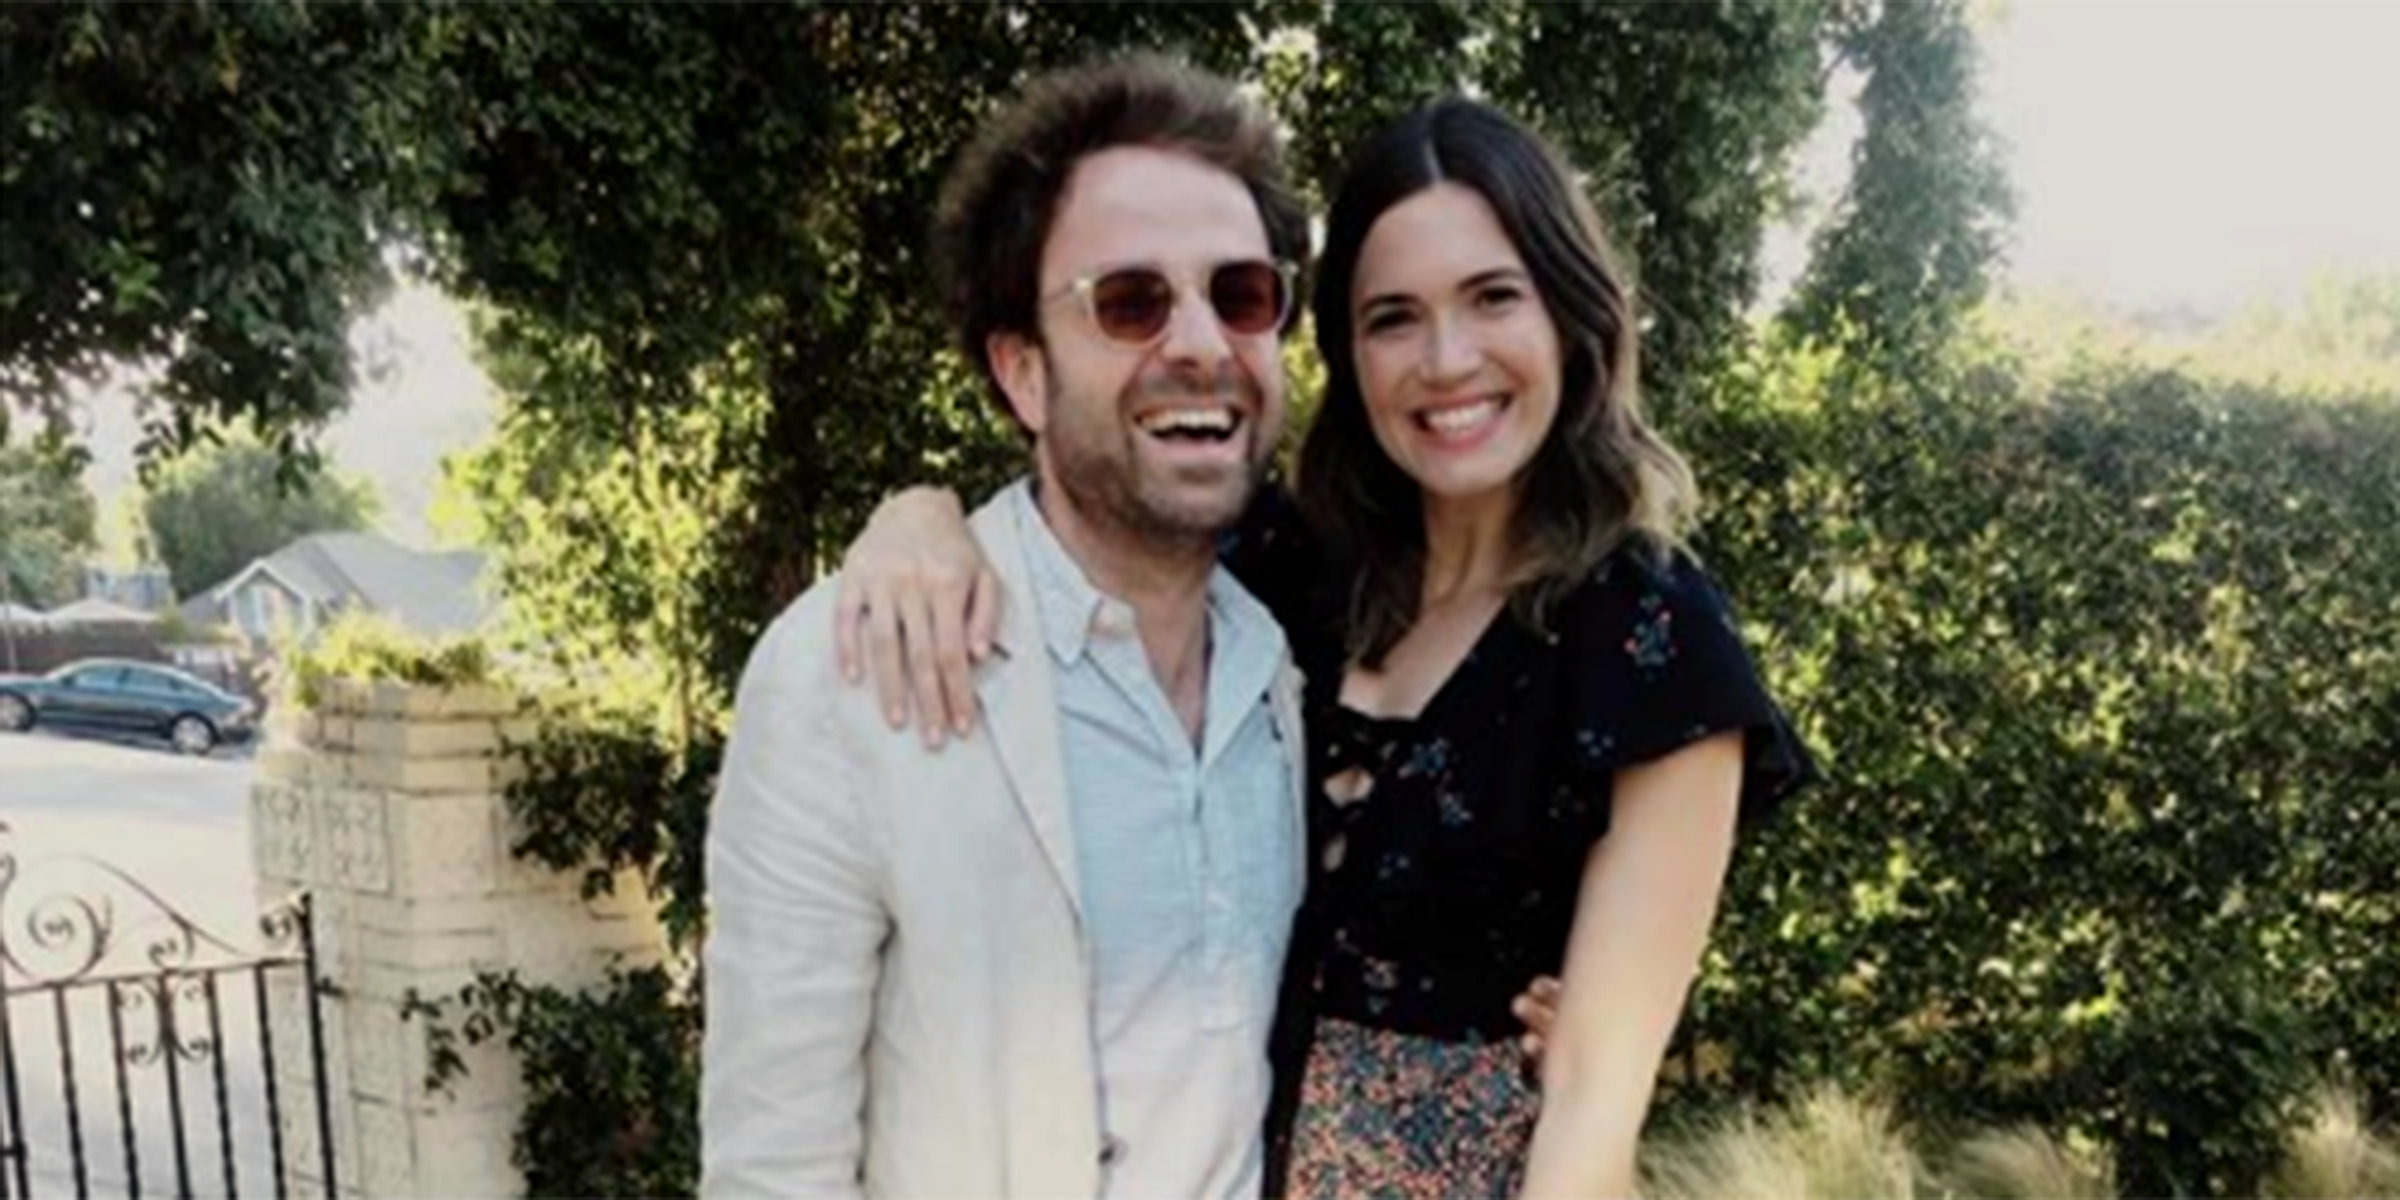 Mandy Moore Wedding.Watch Mandy Moore Sing Wedding Duet With New Husband Taylor